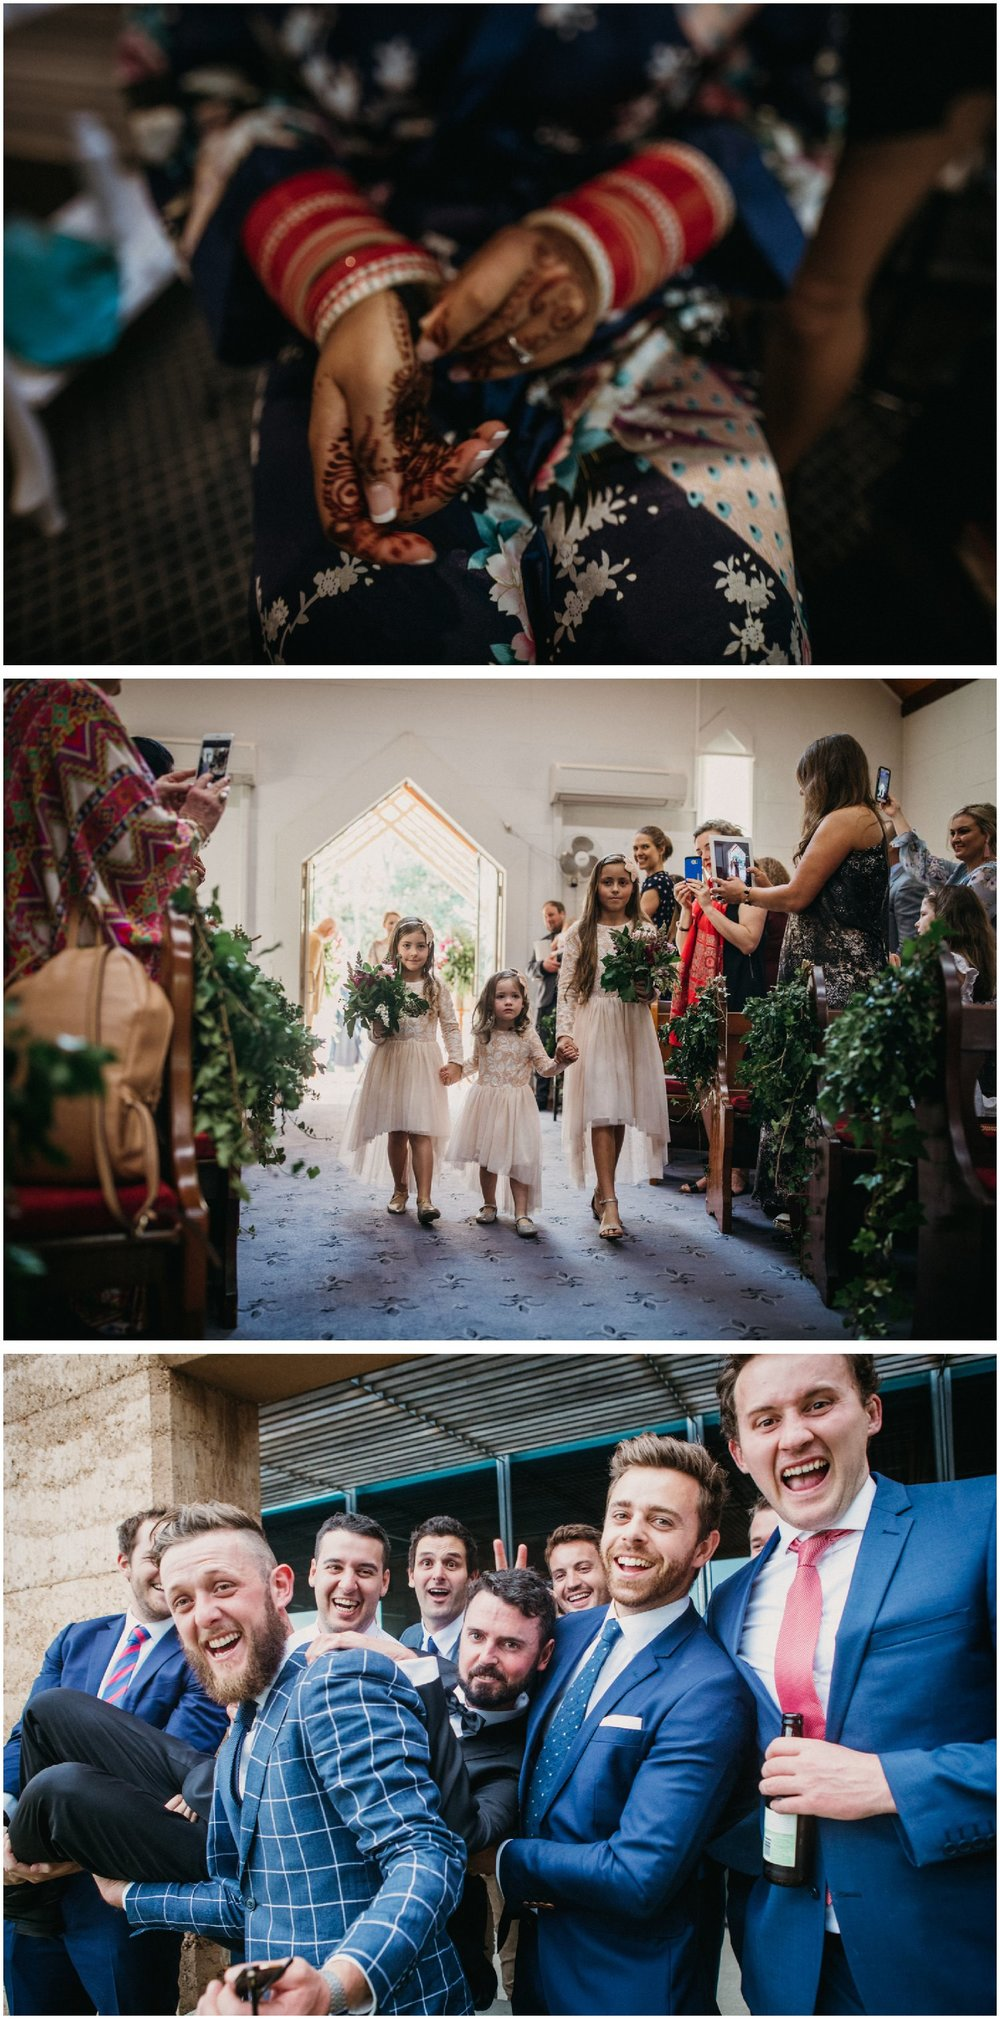 Melbourne Wedding Photographer - 2018 in review -185A0230.jpg